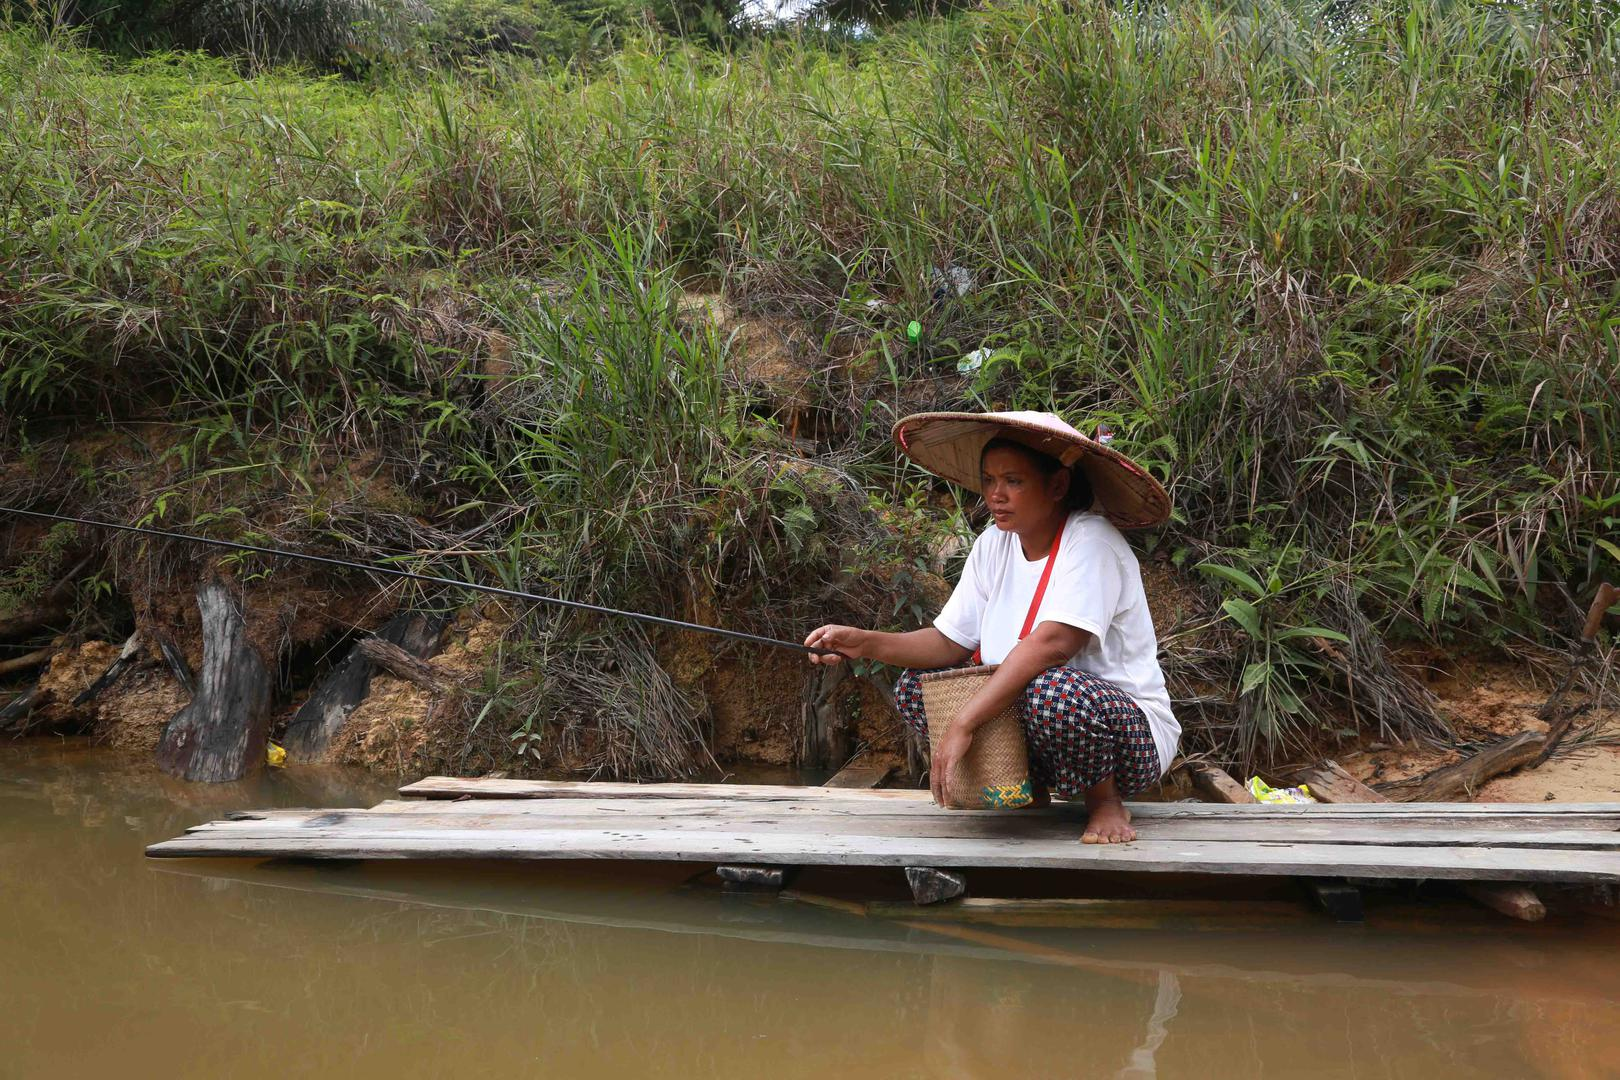 Climate Action Must Take into Account Women's Right to Land